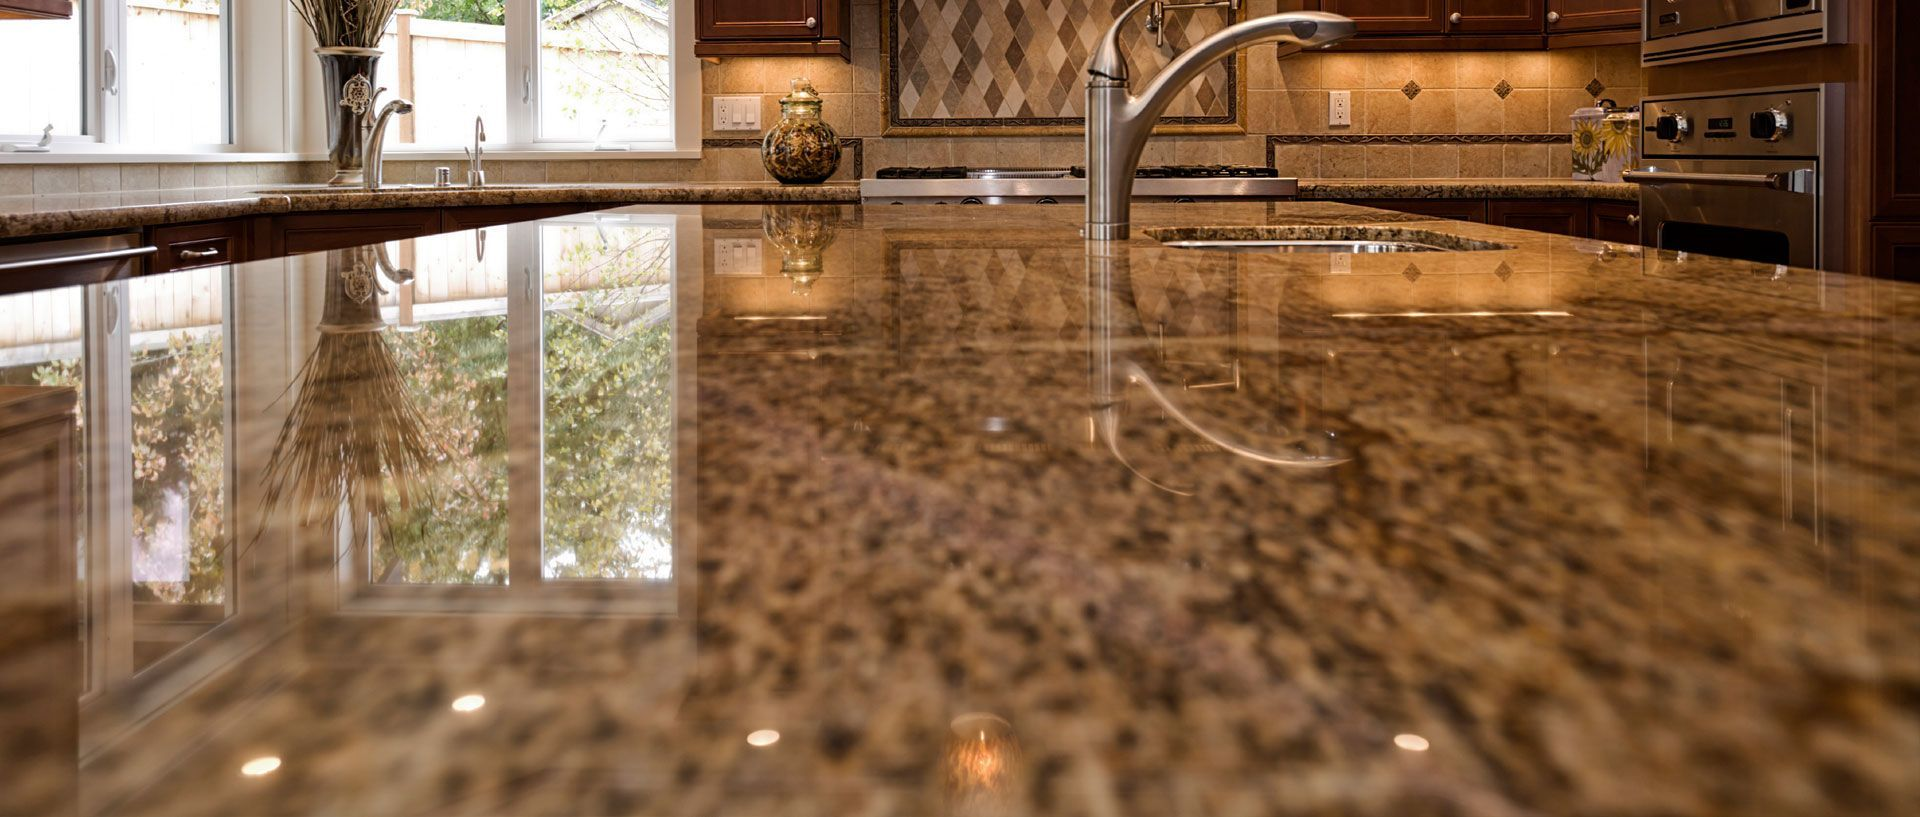 Q. You rate laminate countertops higher than granite for bathroom use but  the reverse for